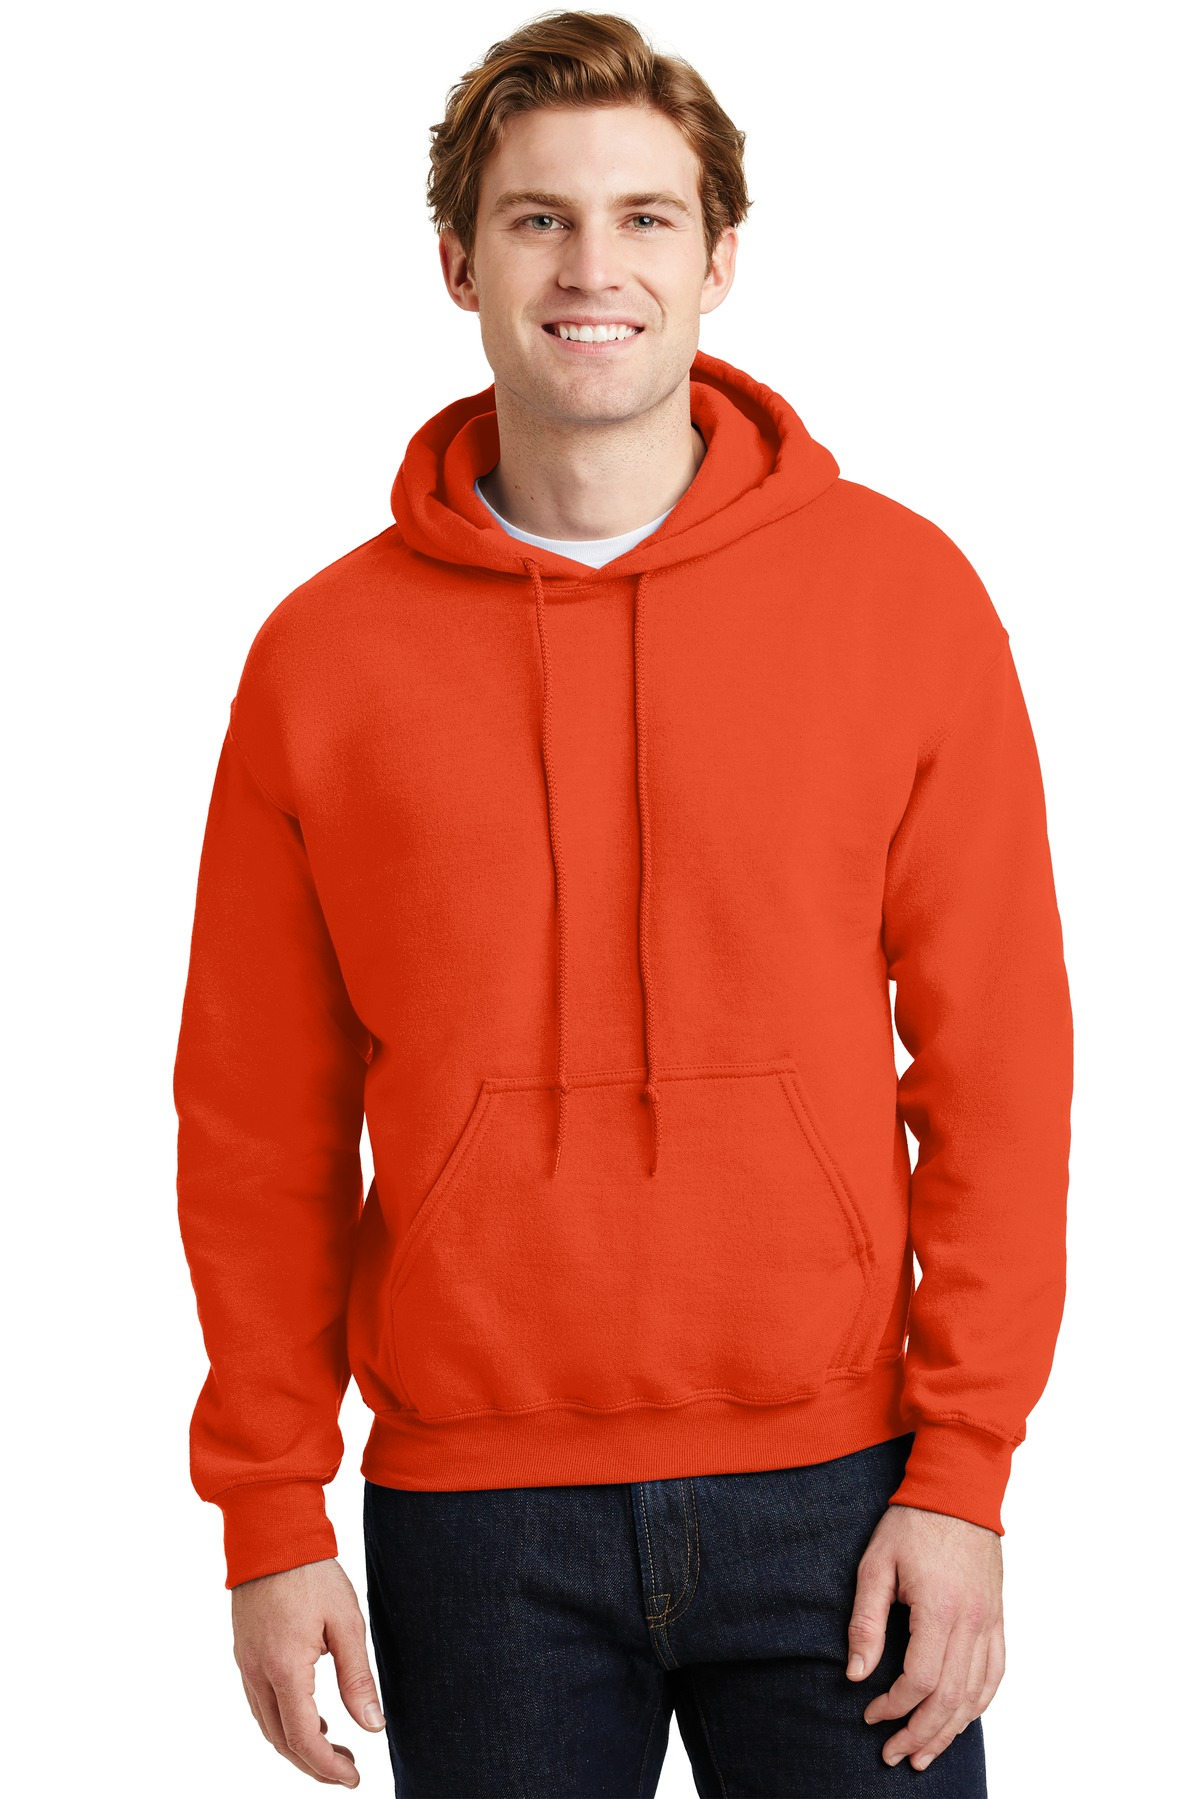 Gildan ®  - Heavy Blend ™  Hooded Sweatshirt.  18500 - Orange